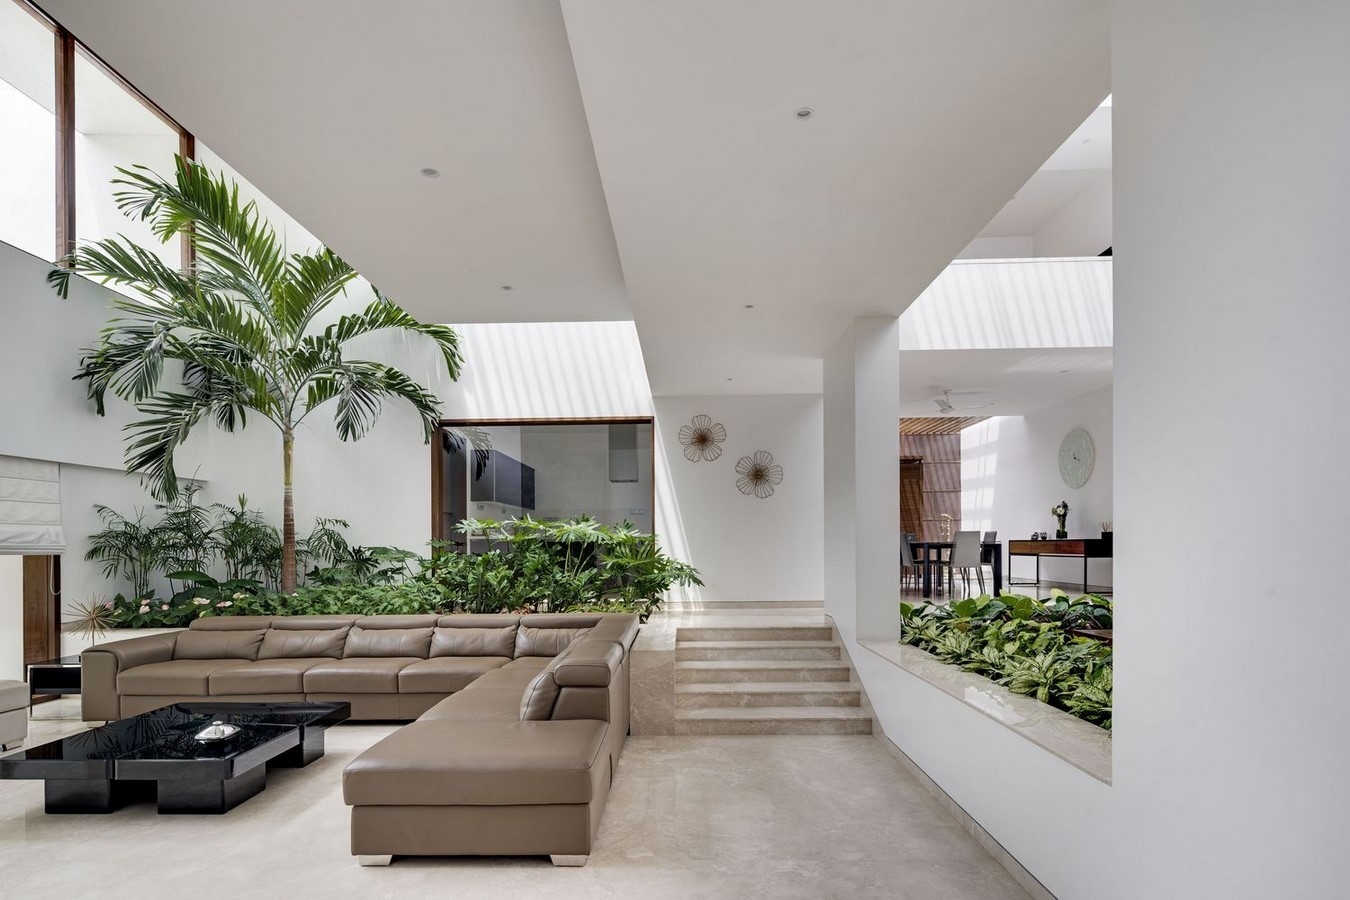 Courtyard Architecture -THE THREE COURTS RESIDENCE - Sheet1